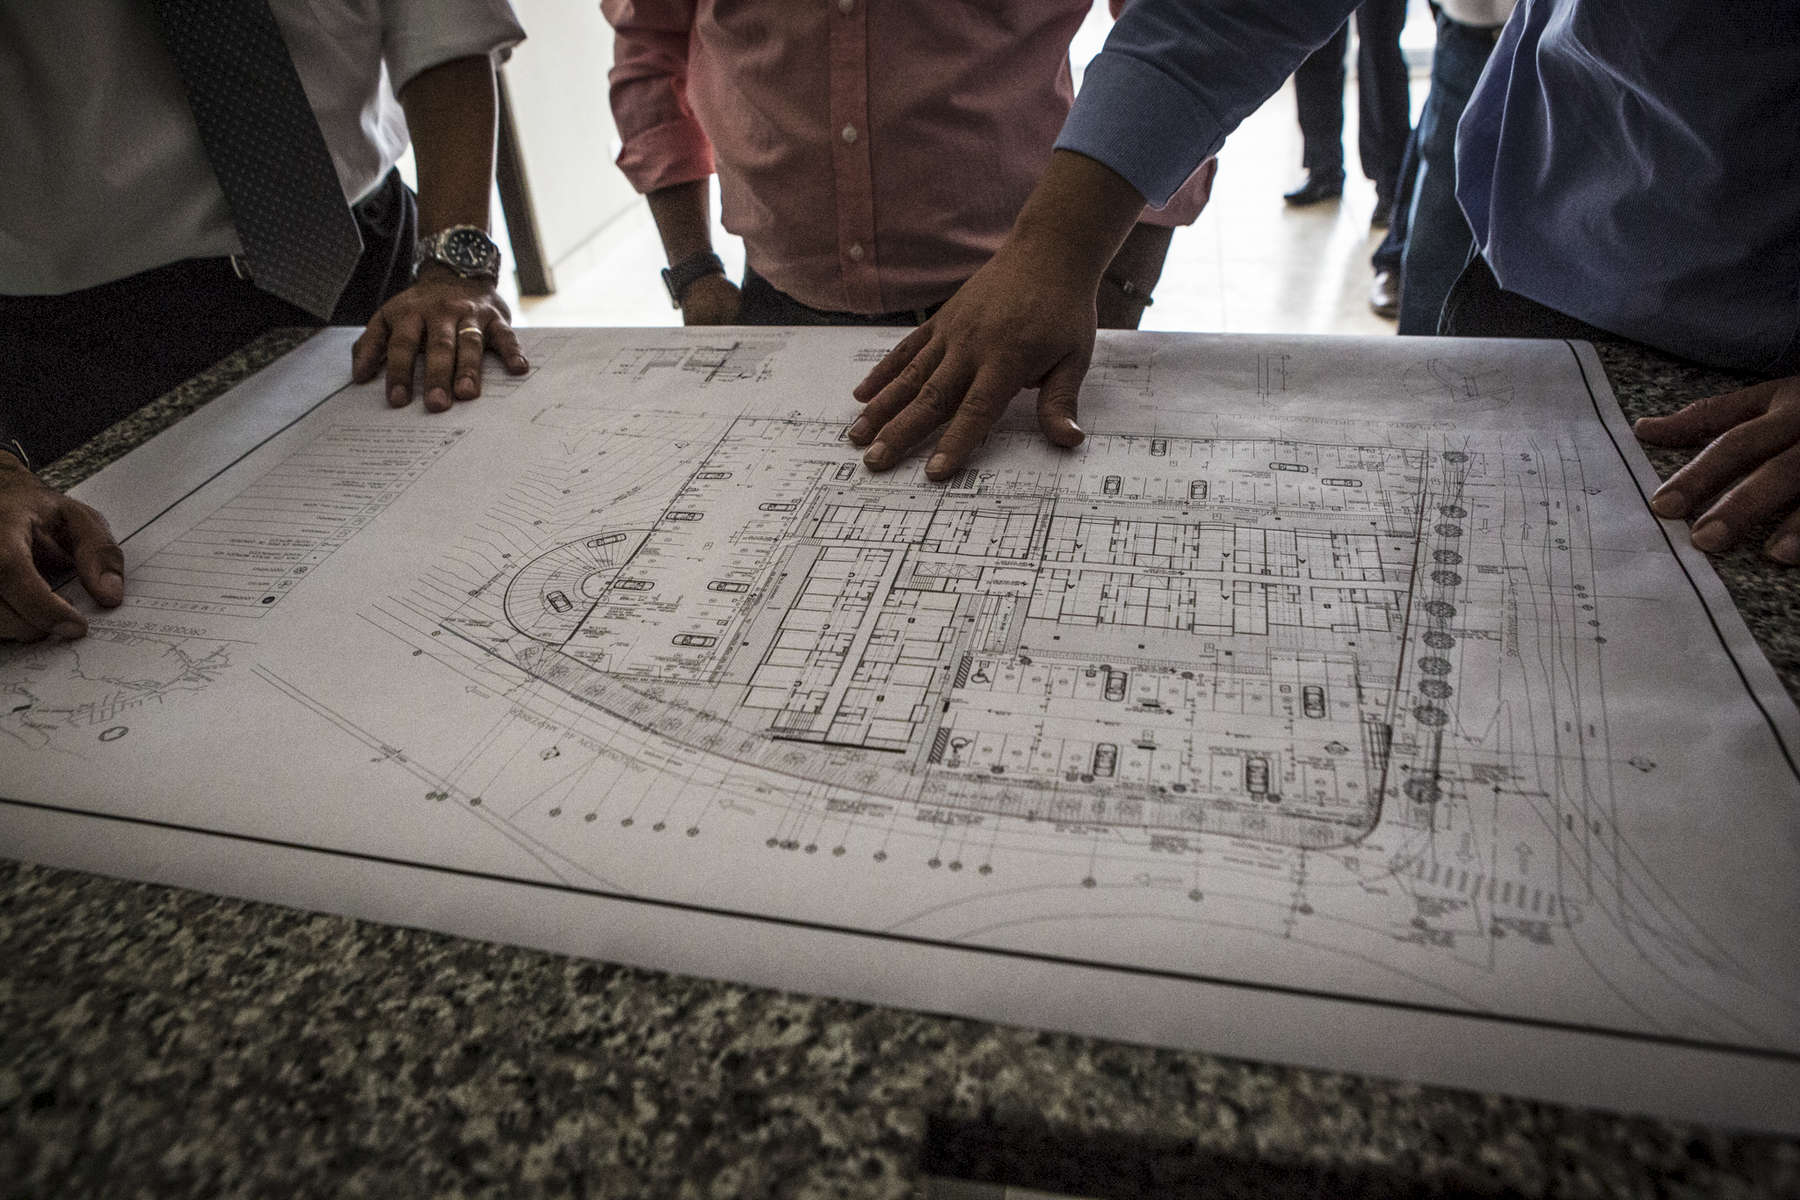 San Salvador, El Salvador- General Manager of Grupo Roble, Rafael Menéndez, Vice President of El Salvador, Óscar Ortiz, and President of ANDA (National Administration of Aqueducts and Sewers), Felipe Rivas look over blueprints to the Vista Tower construction site in San Salvador, El Salvador June 2018. (Jane Hahn)